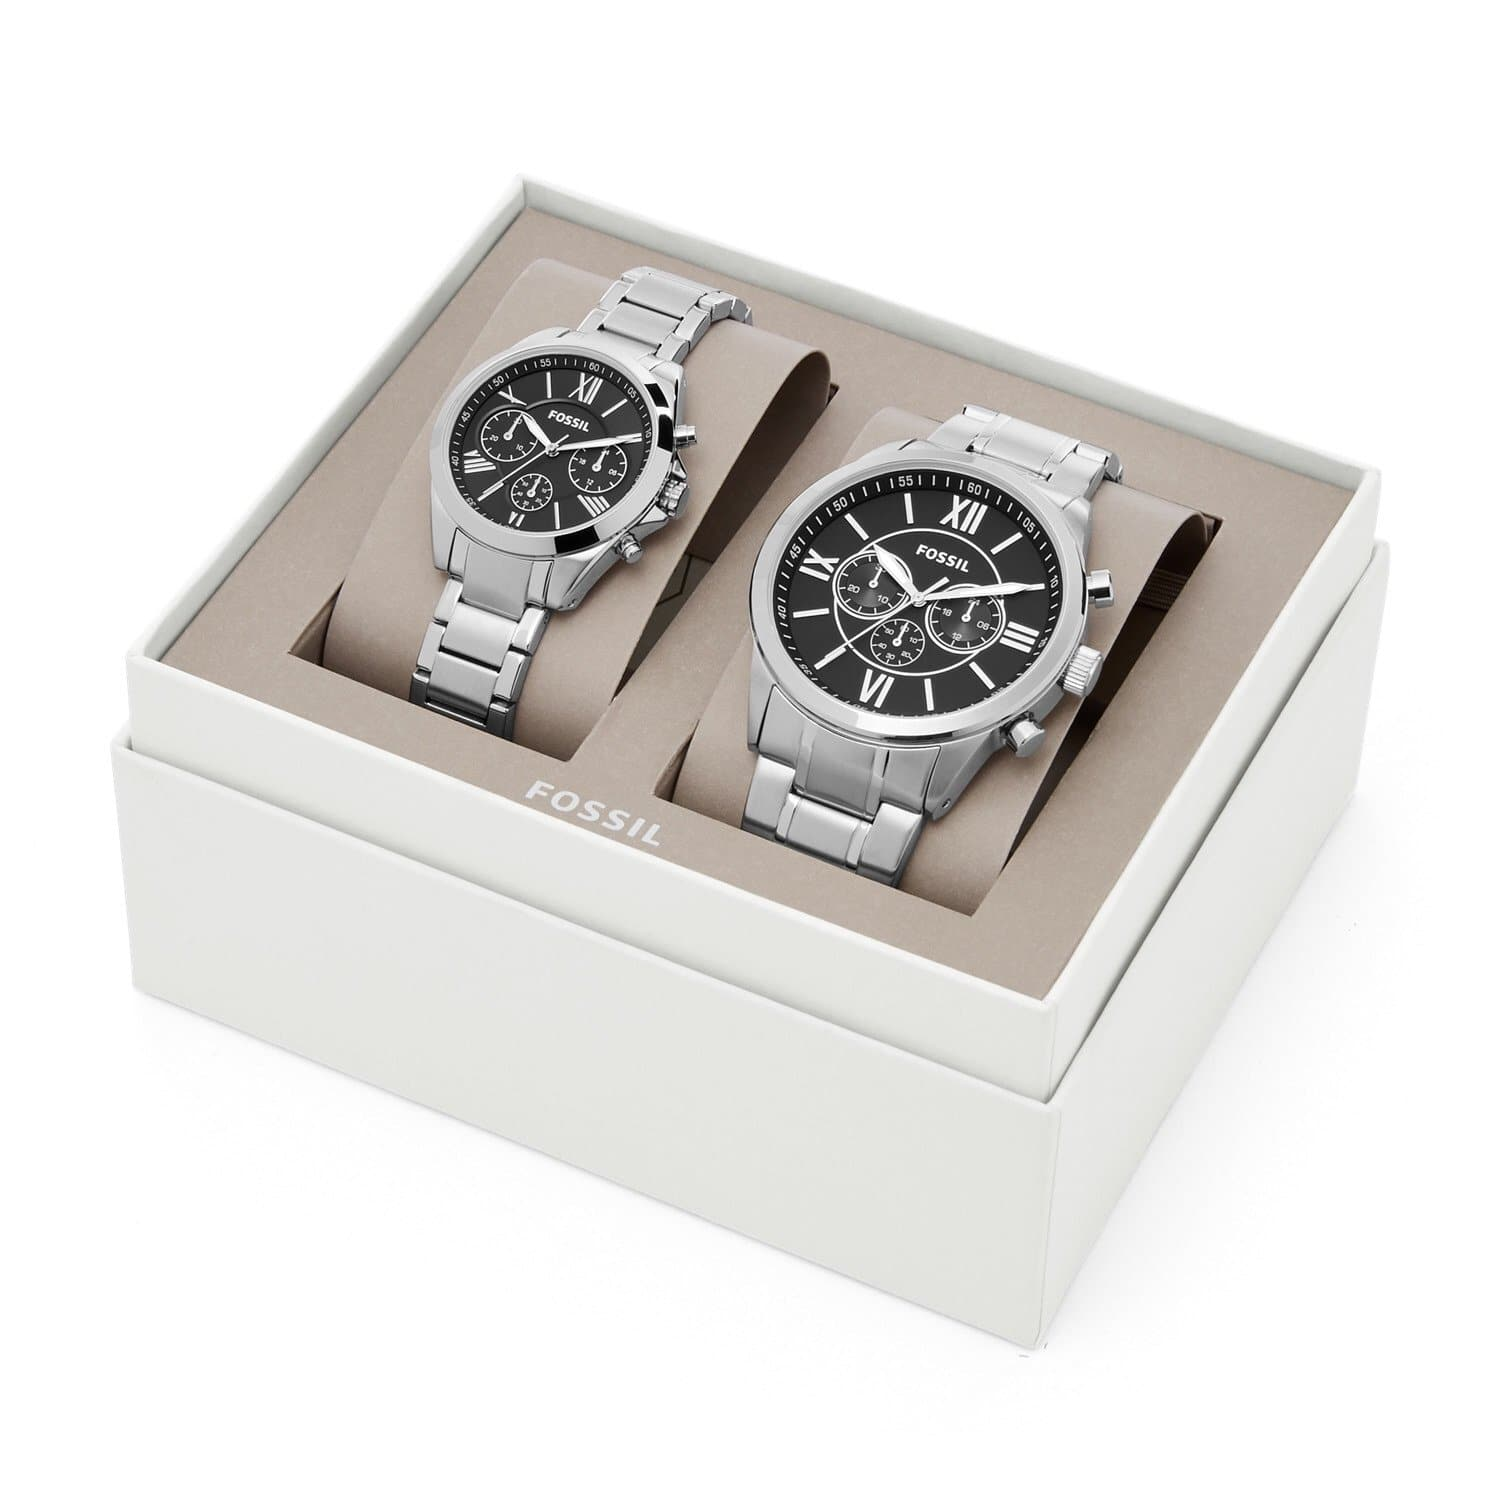 FOSSIL HIS AND HER CHRONOGRAPH STAINLESS STEEL WATCH GIFT SET BQ2146SET